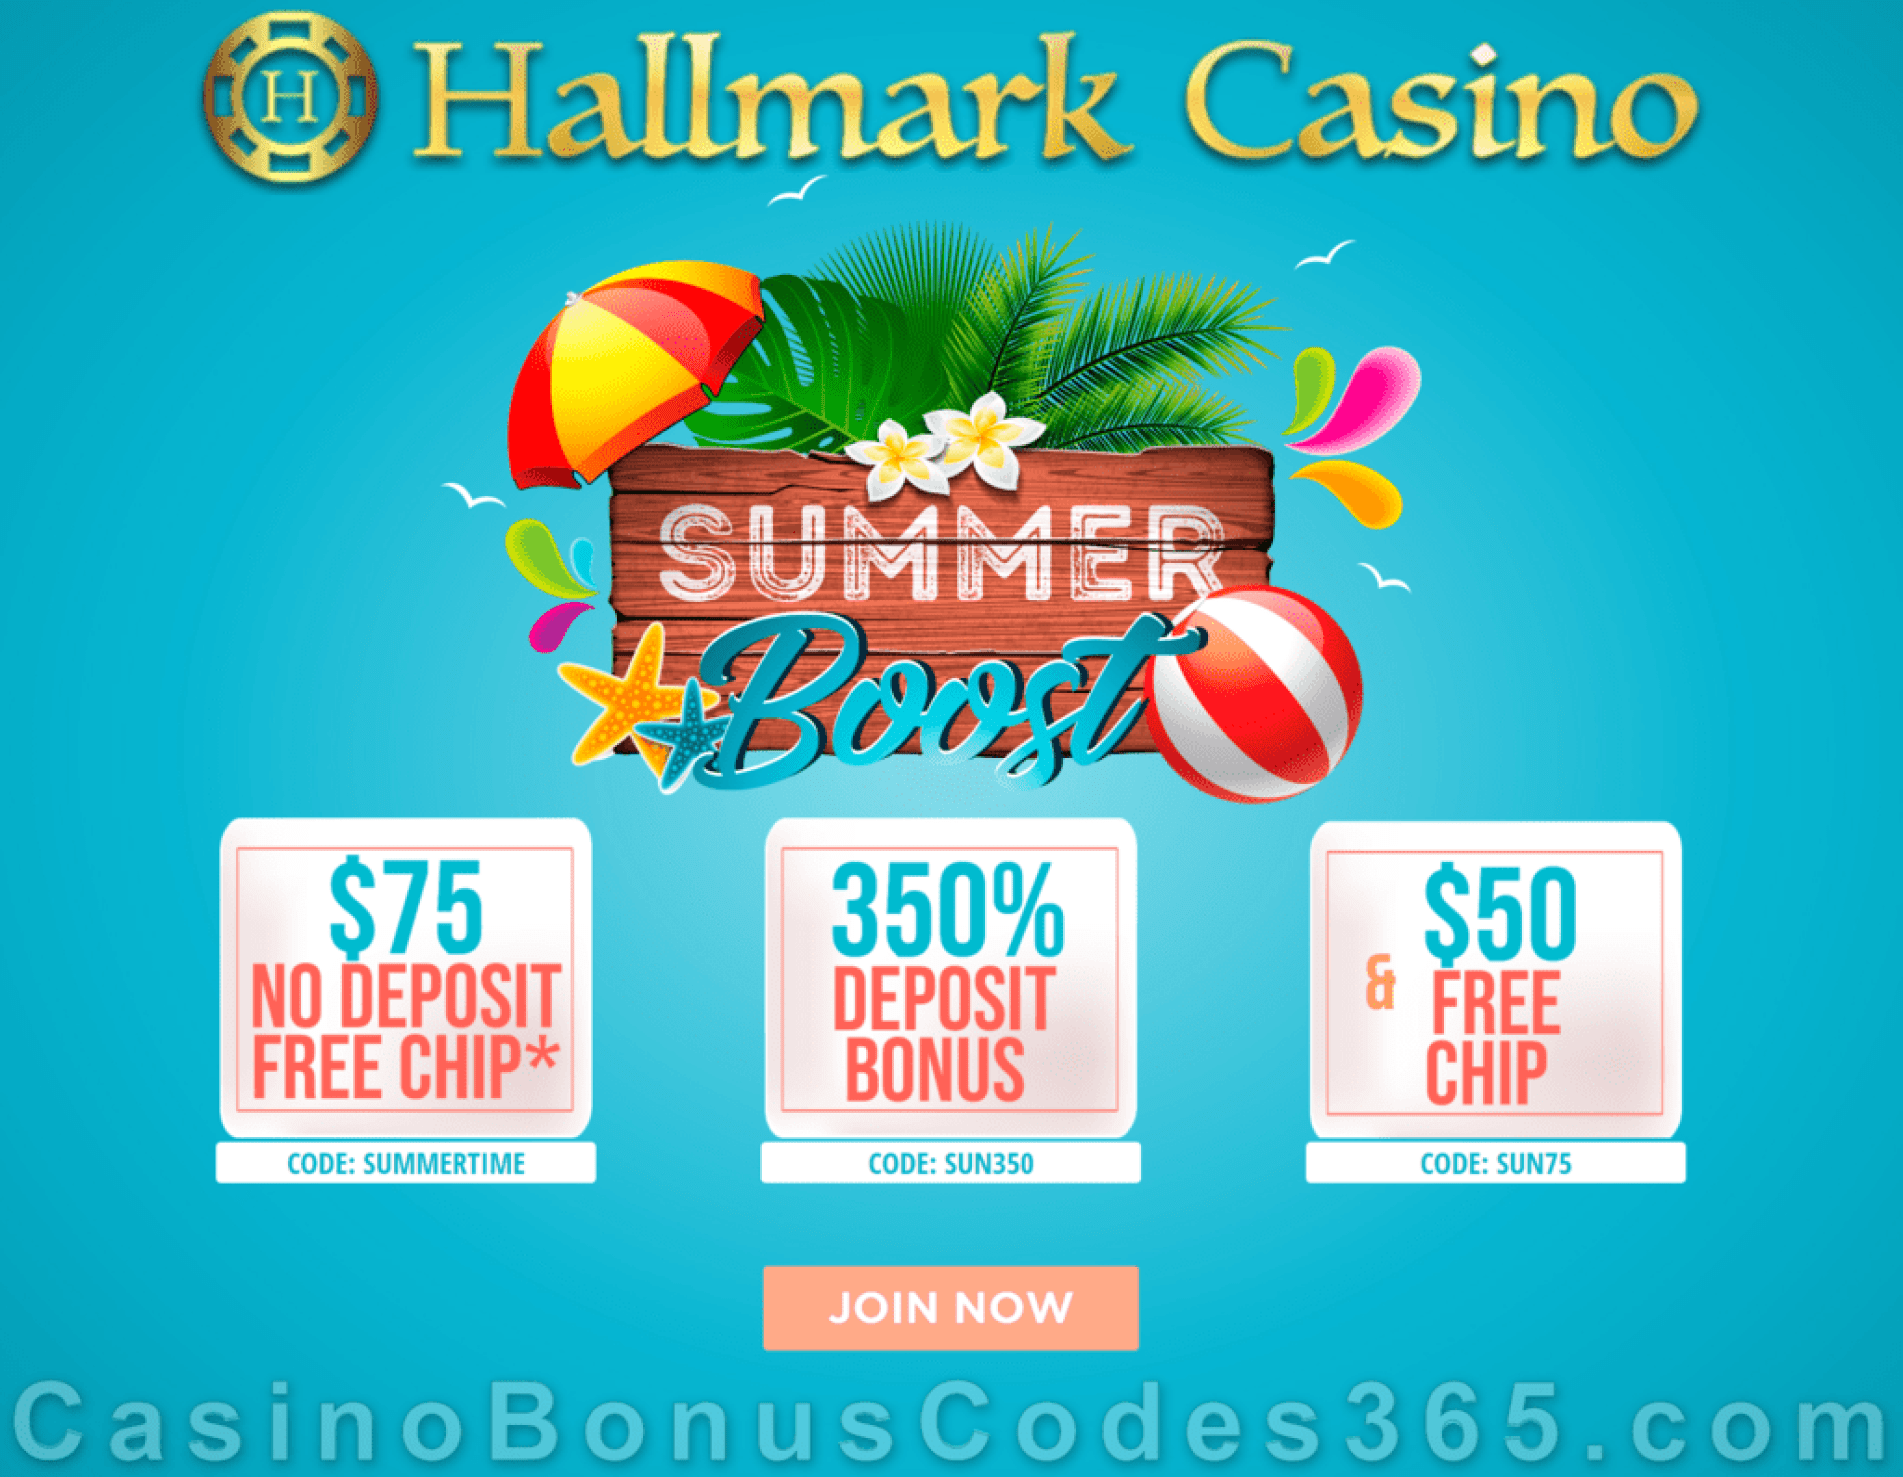 Hallmark Casino $125 FREE Chip plus 350% Match Bonus Summer Boost